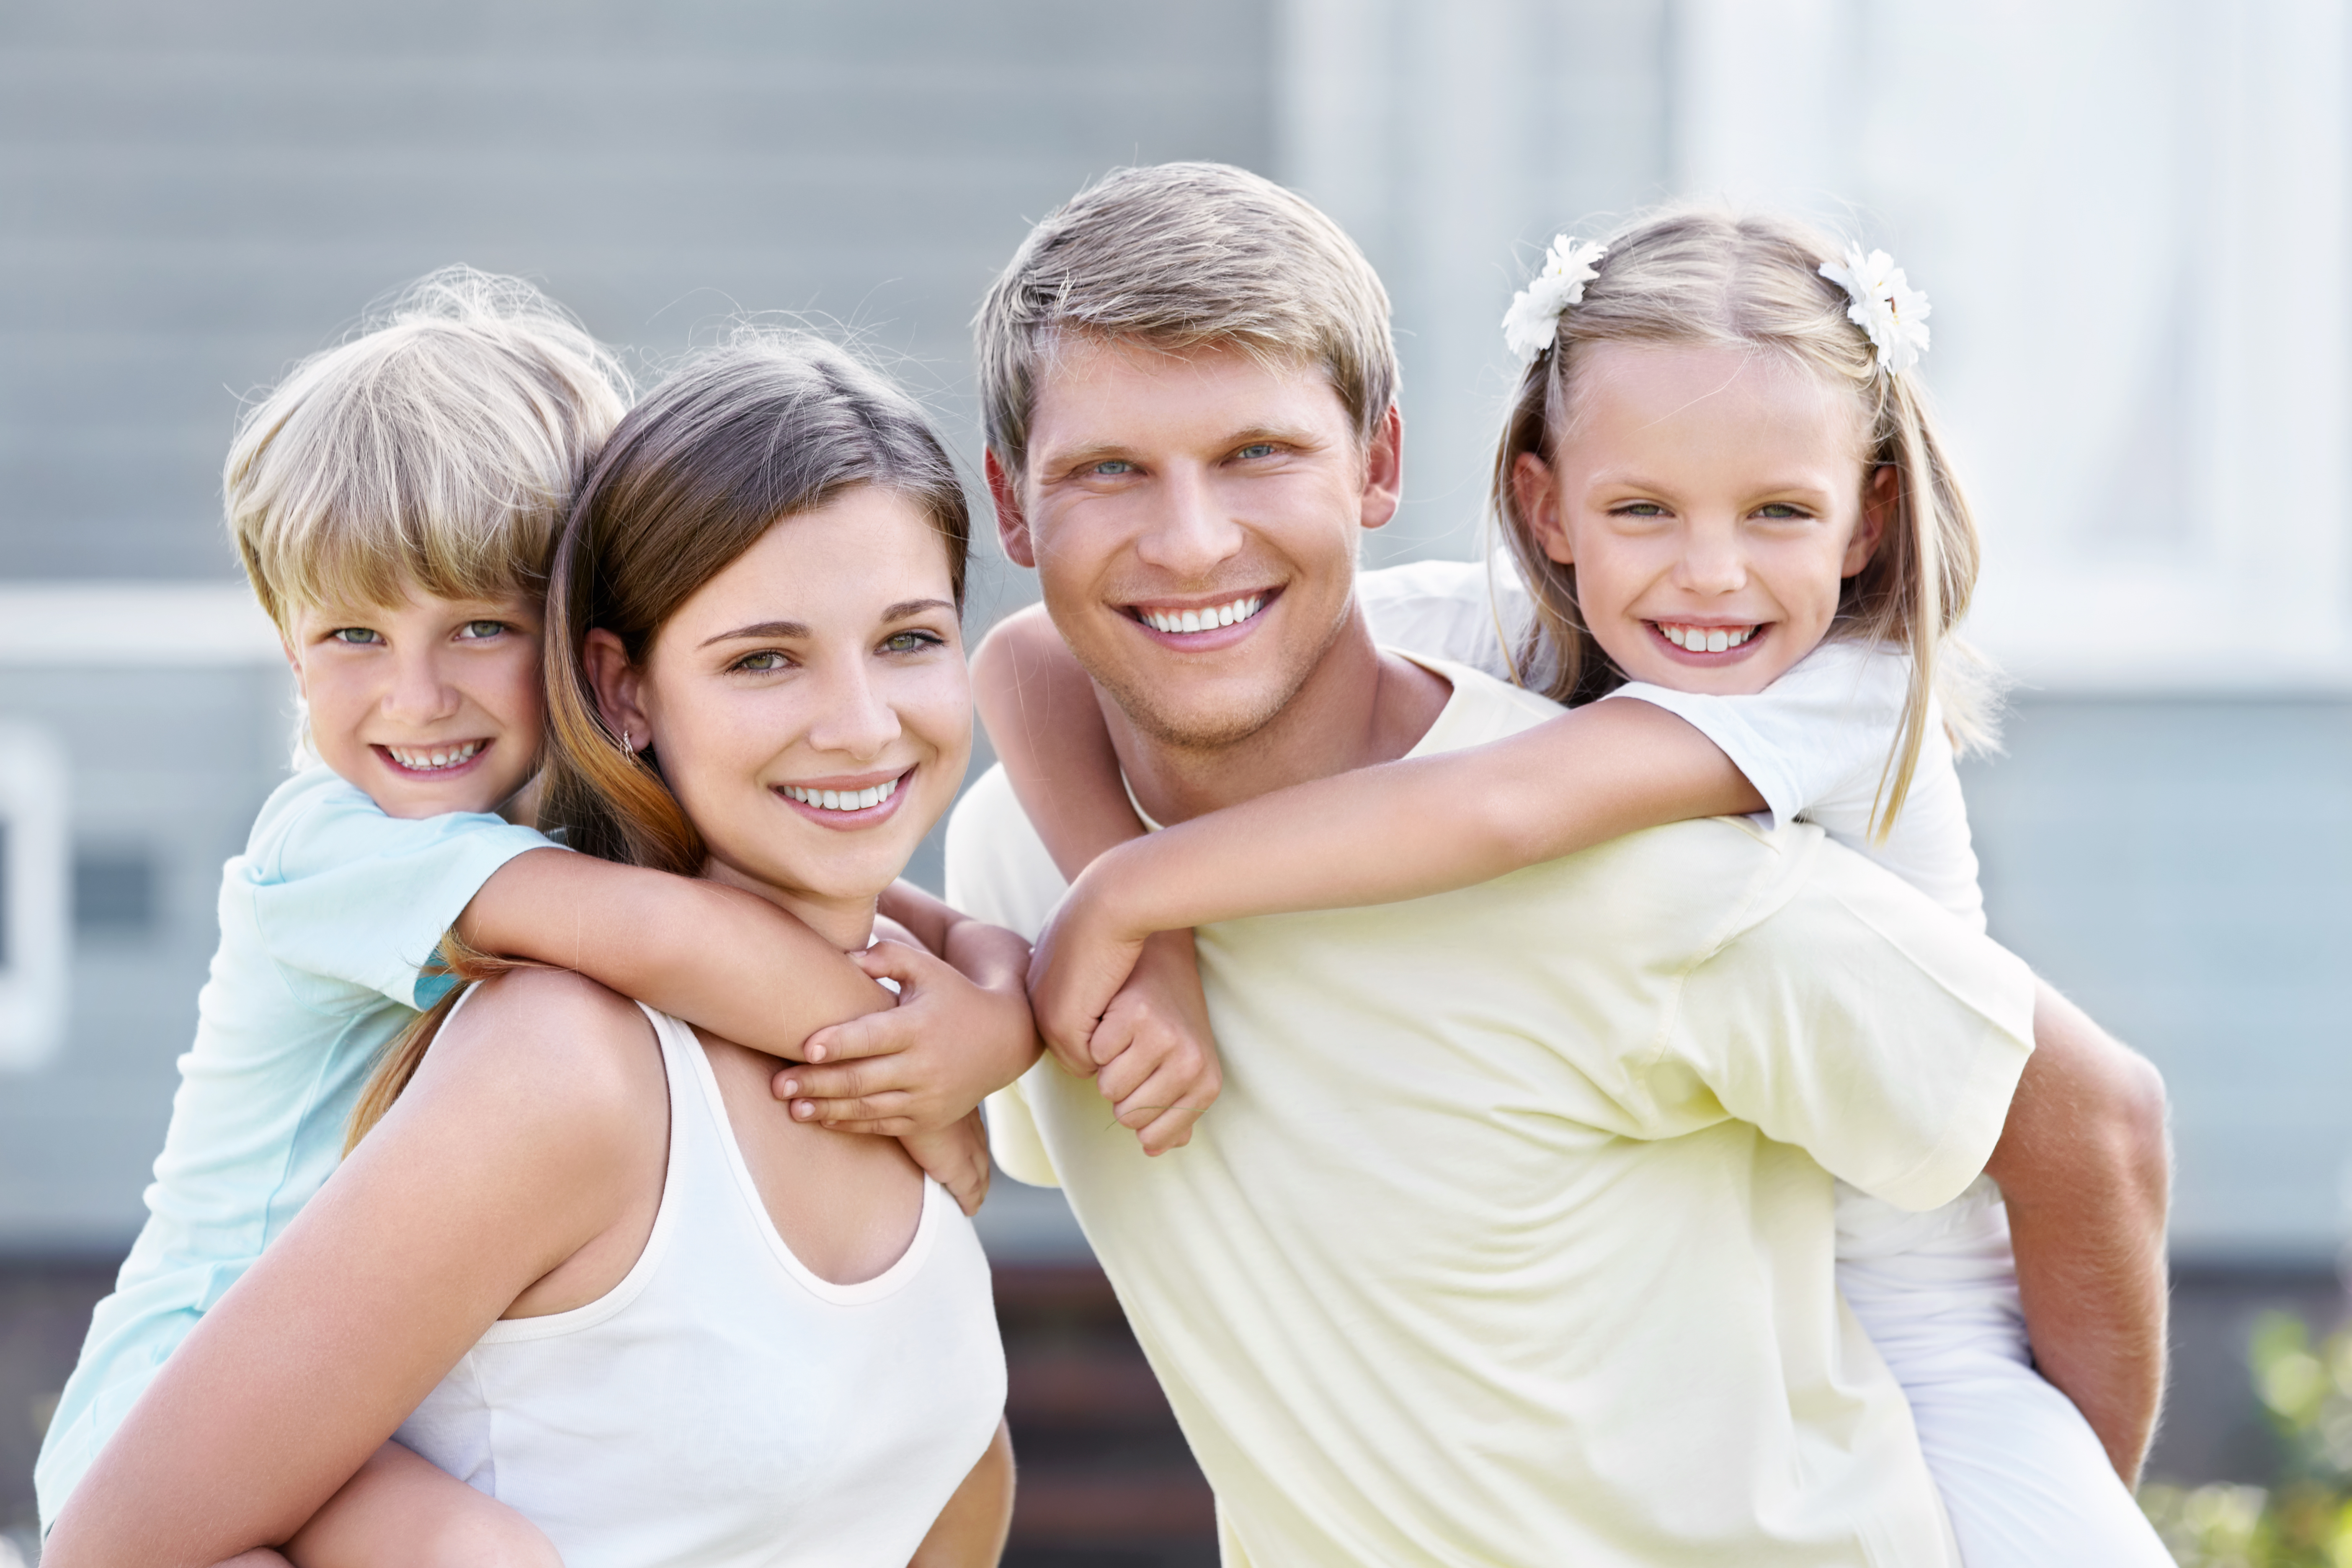 Family Dentist Green Bay - Picture of smiling family